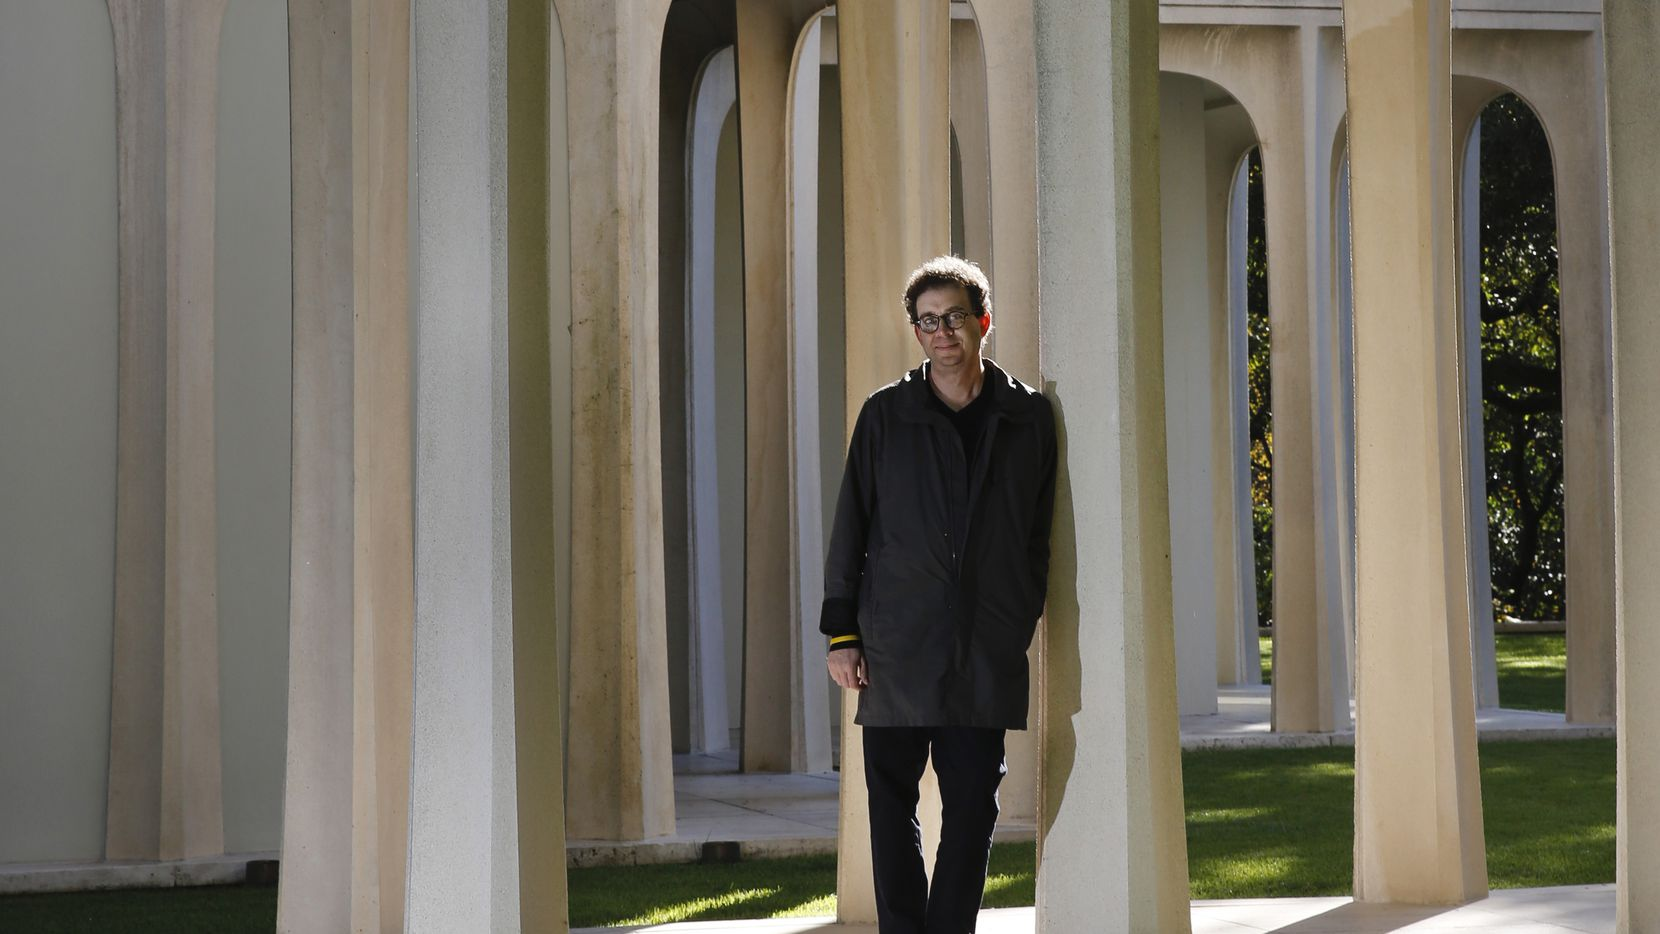 Dallas Morning News architecture critic Mark Lamster is pictured at the famous Beck House, a work by architect Philip Johnson, in 2018.